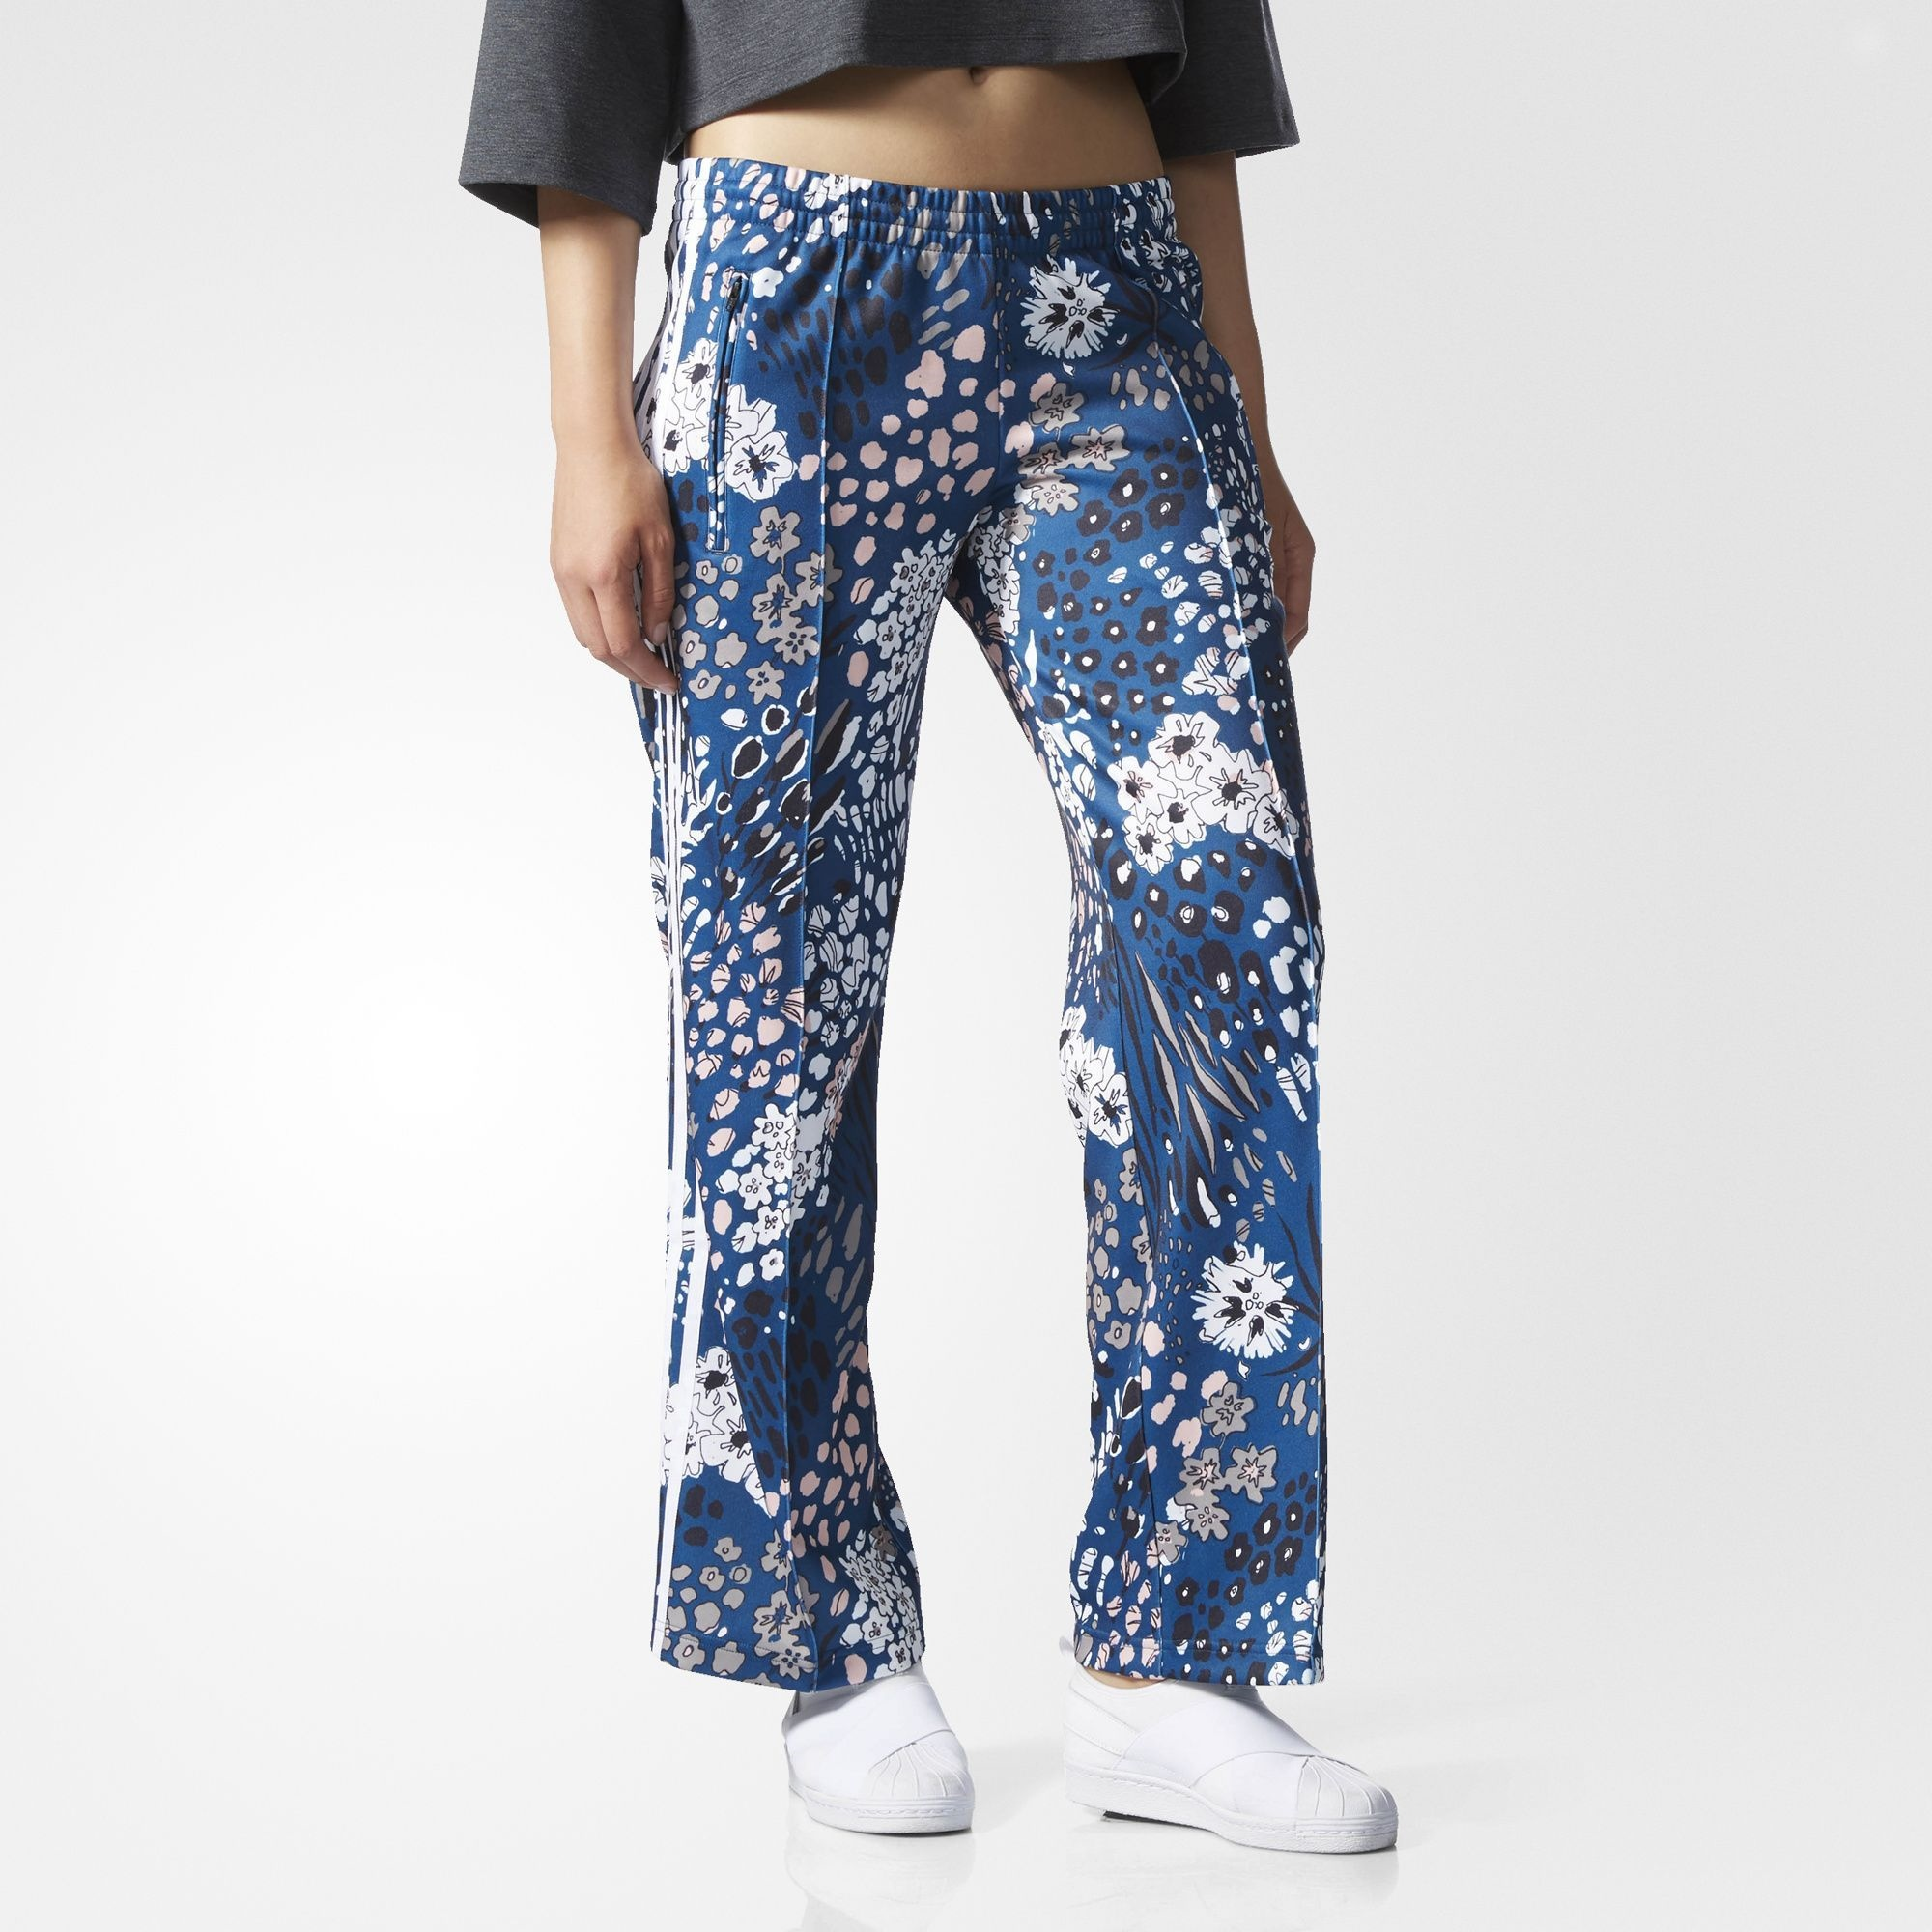 fdfe8299b5e adidas Originals Womens Floral Sailor Track Pants Trousers | AY6685. All  sizes listed are UK. See sizing tab below for conversions.